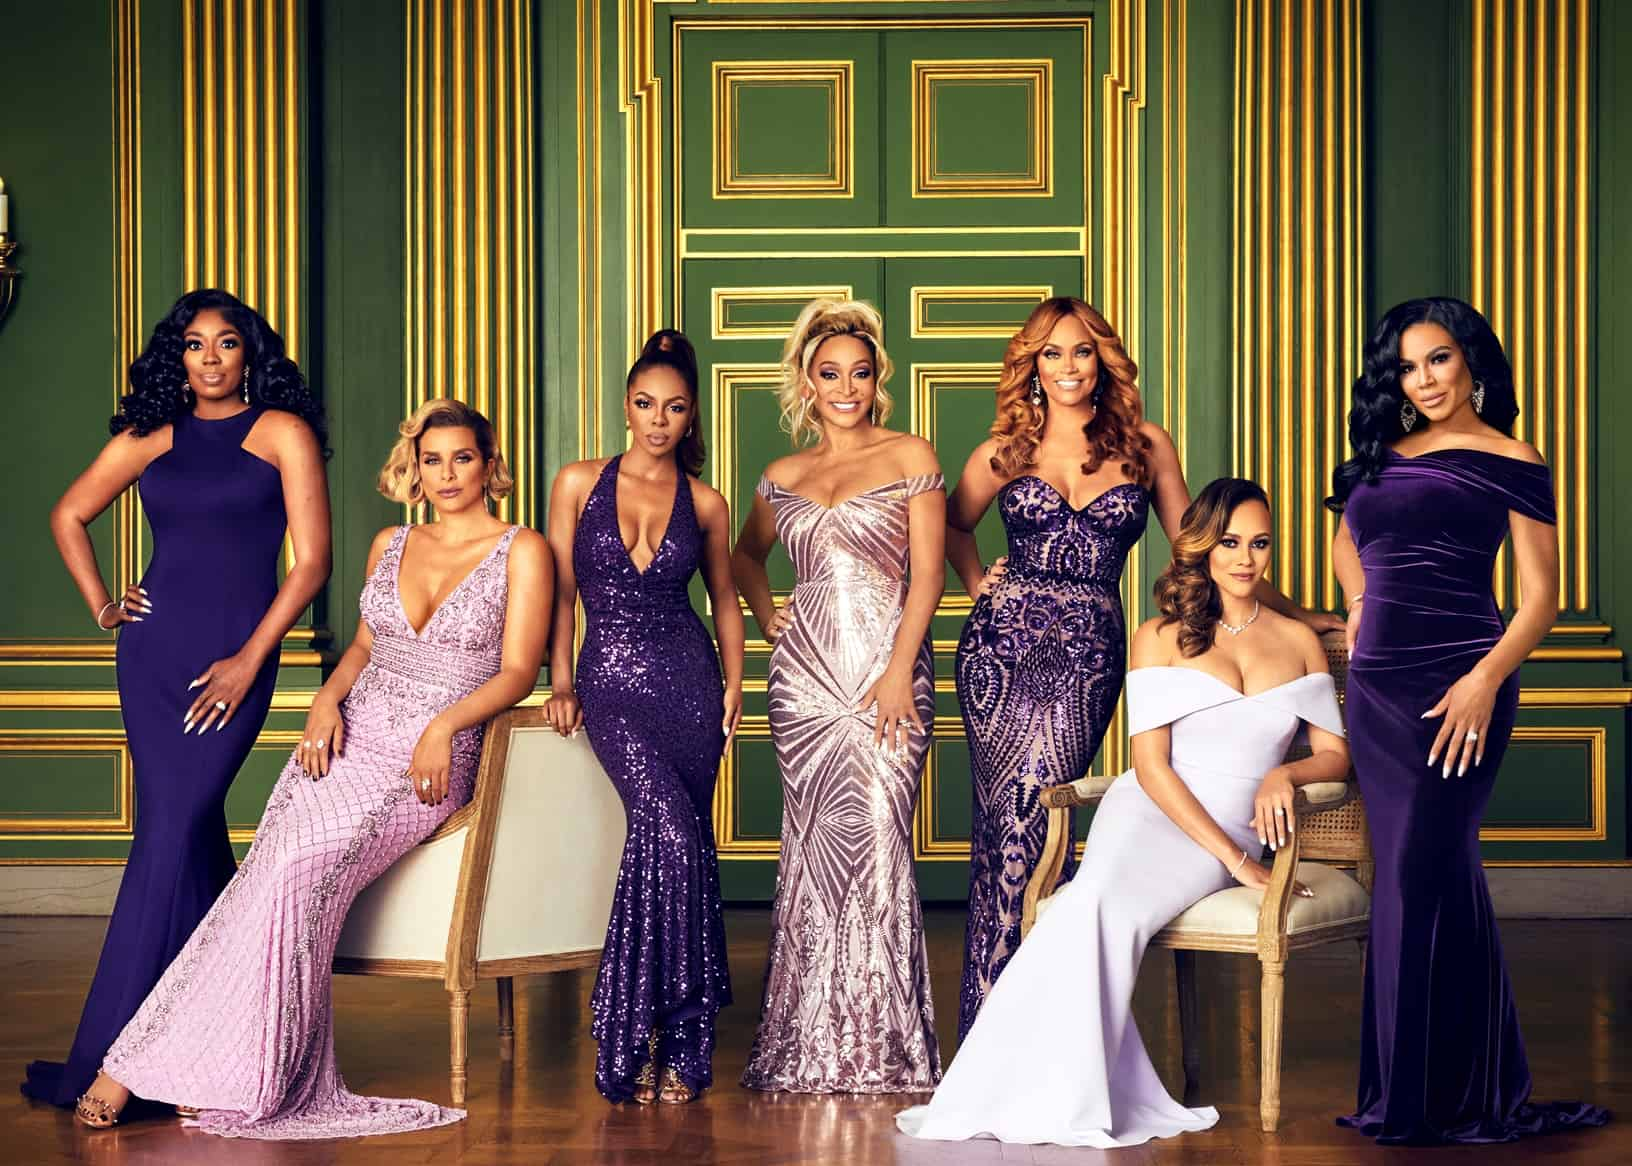 VIDEO: Watch RHOP Season 6 Trailer! Gizelle Seemingly Exposes Rumors About Wendy's Marriage as Gizelle Faces Her Own Issues With Pastor Jamal, Plus Robyn Deals With Depression and Problems With Juan, and Newbie Mia Thornton Is Introduced